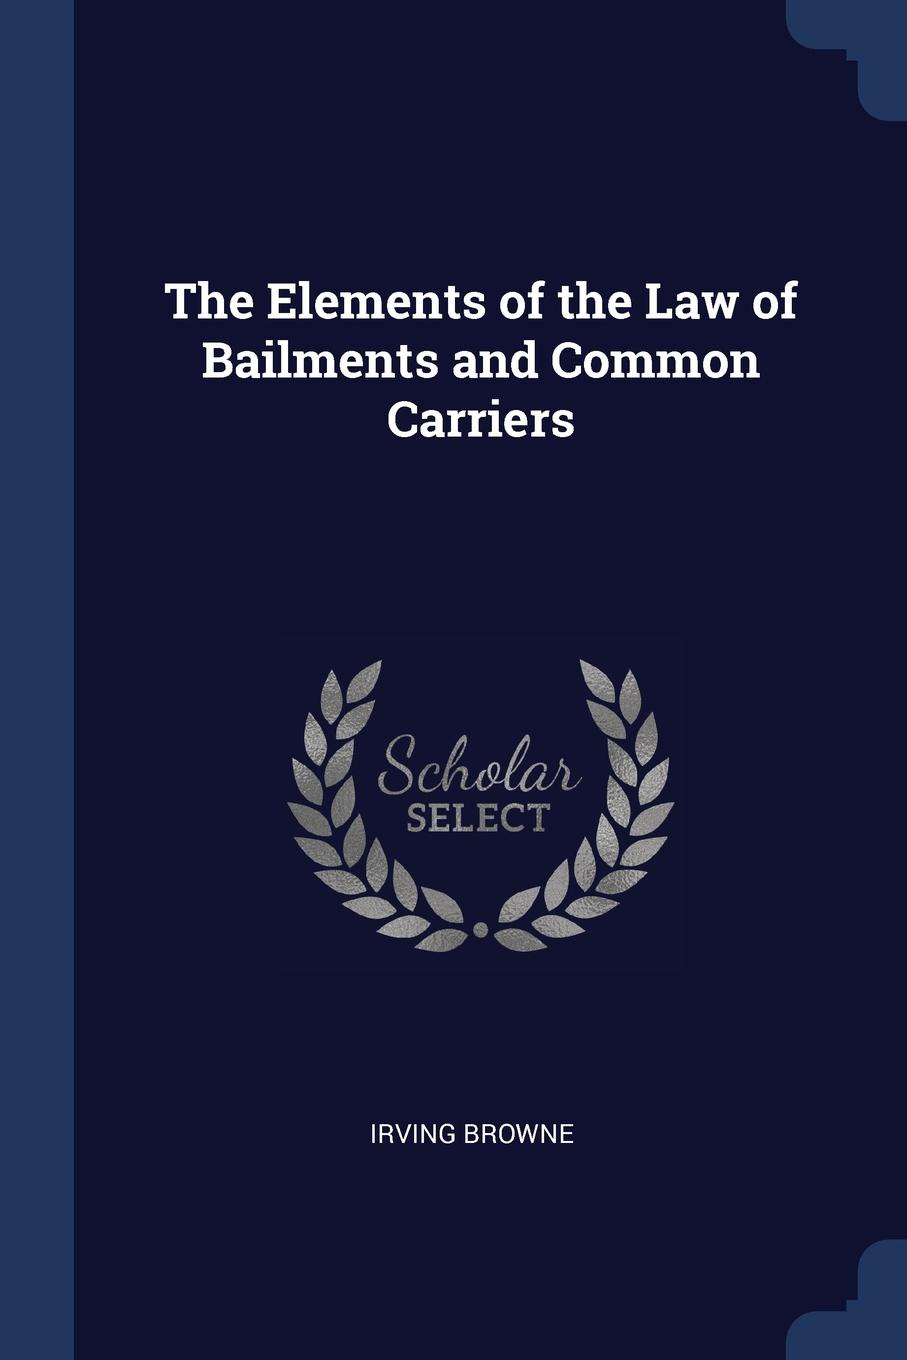 Irving Browne The Elements of the Law Bailments and Common Carriers